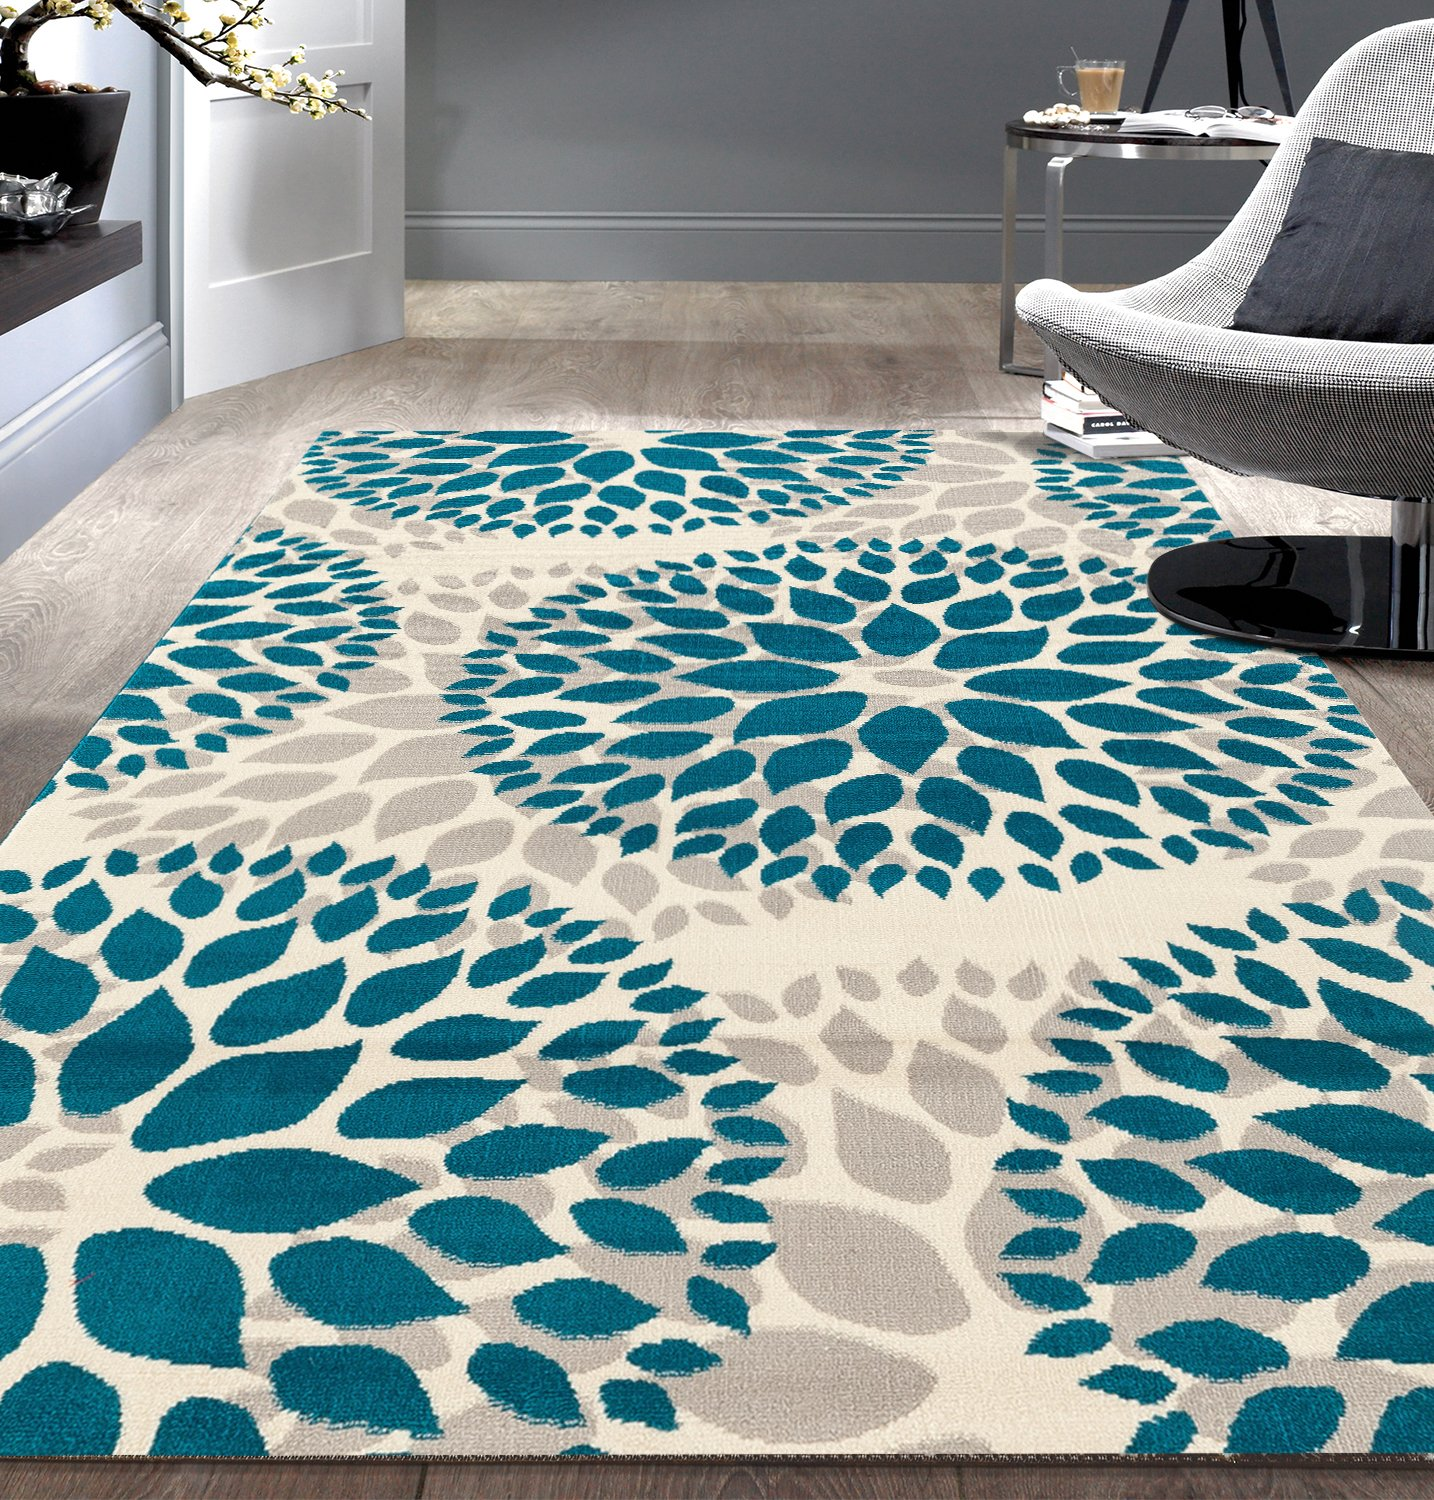 Modern Floral Circles Design Blue 9' x 12' Area Rug by Rugshop